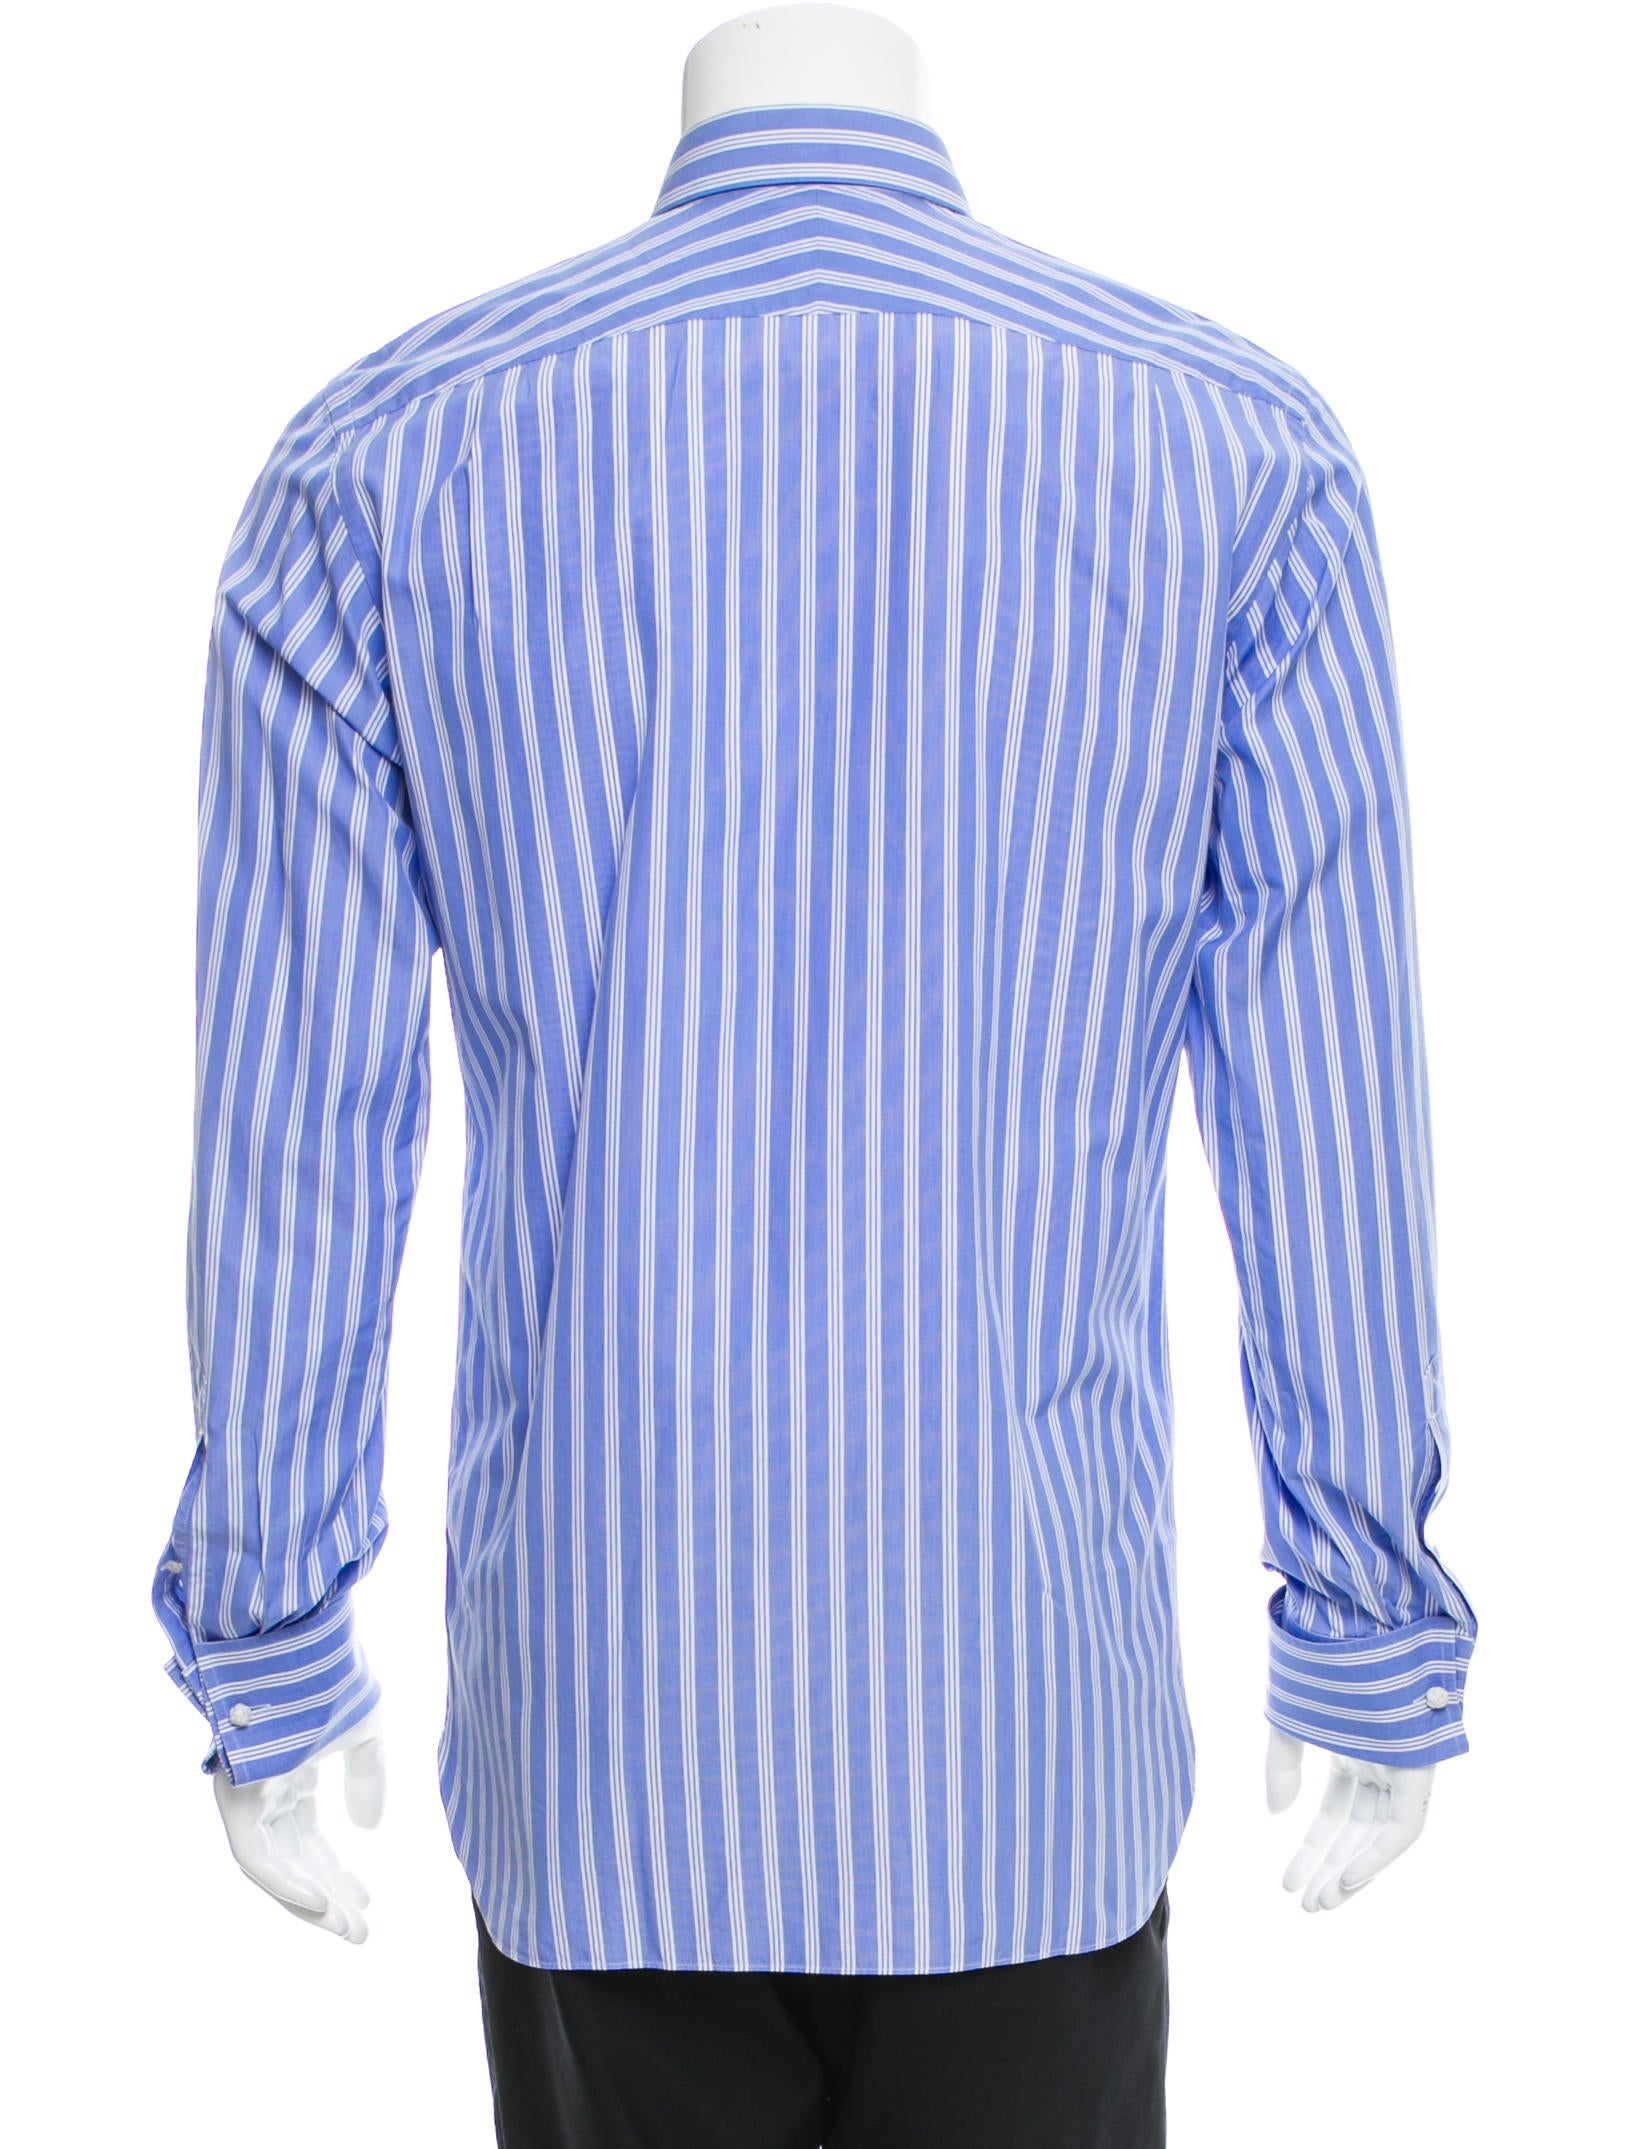 Tom ford french cuff button up shirt clothing tom36089 for French cuff dress shirts for sale